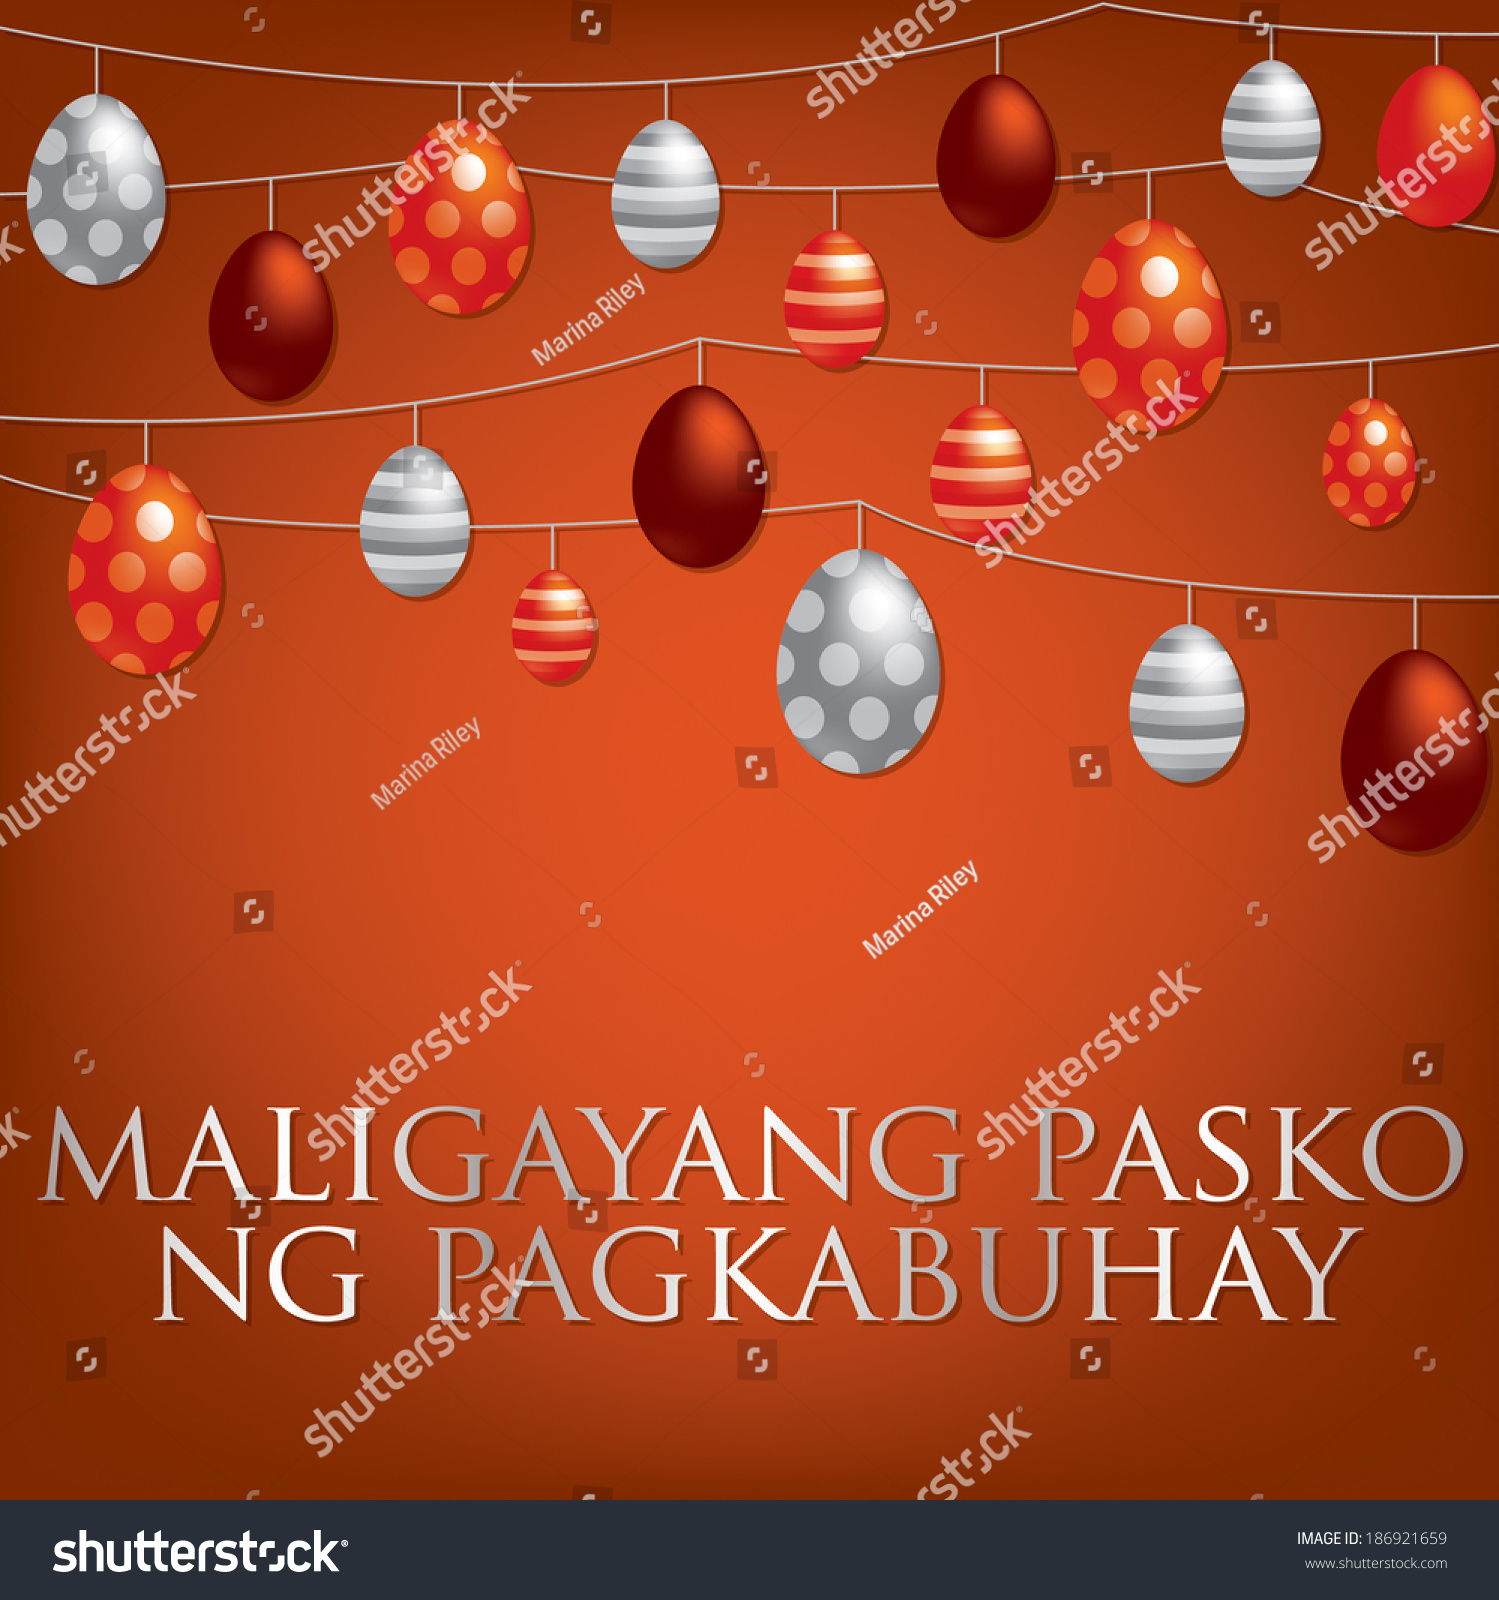 String easter eggs card tagalog filipino stock vector 186921659 string of easter eggs card in tagalog filipino in vector format m4hsunfo